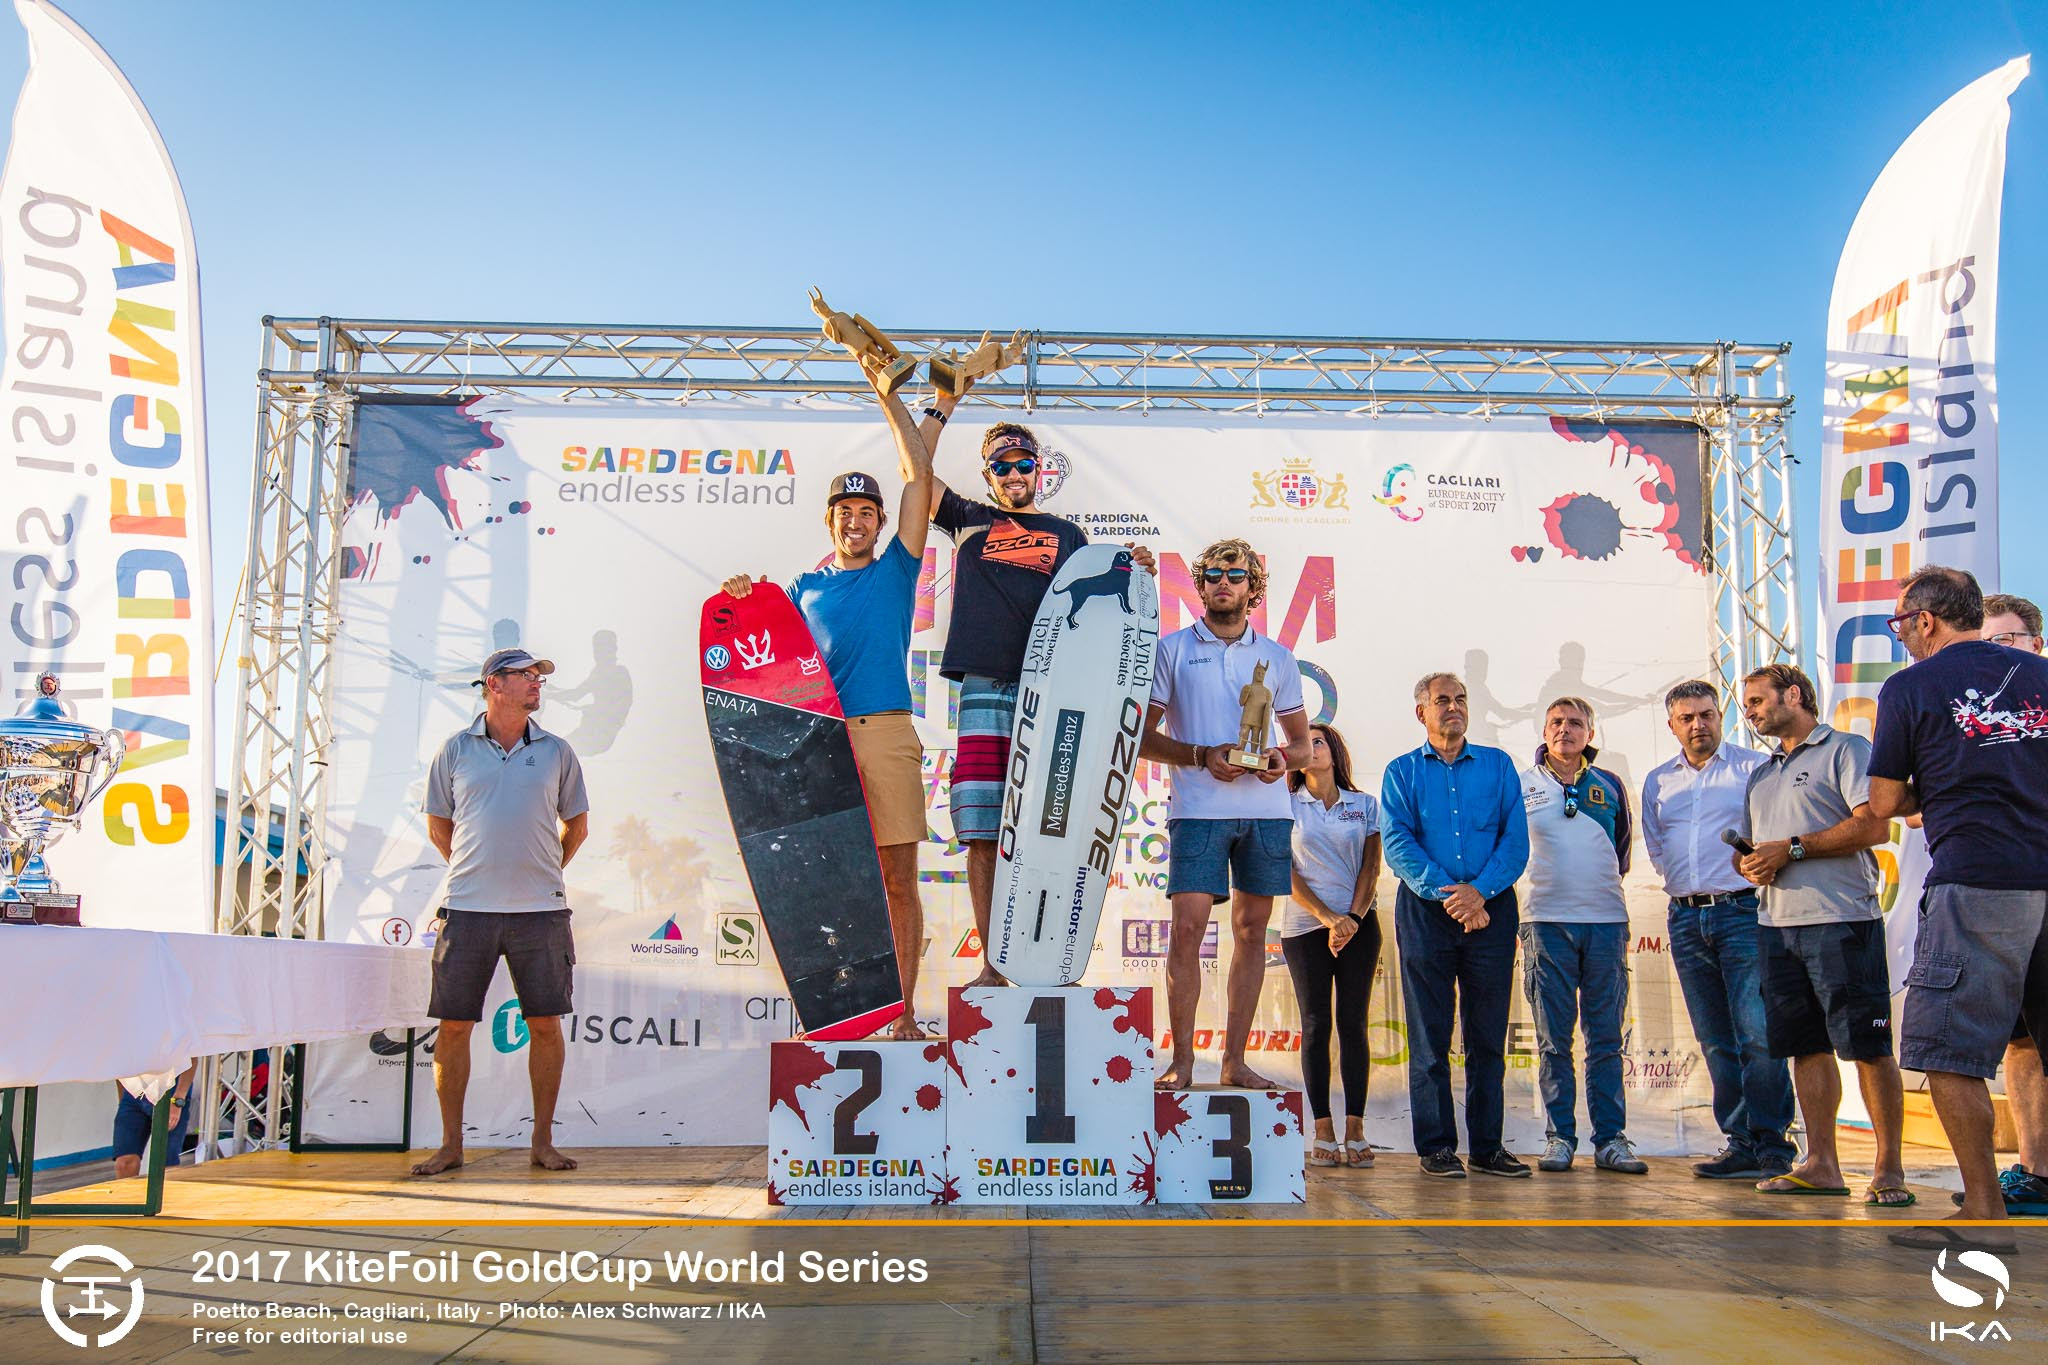 39931ffa 3823 4f5e b967 3c98c7478862 - Final day of racing at KiteFoil World Championships